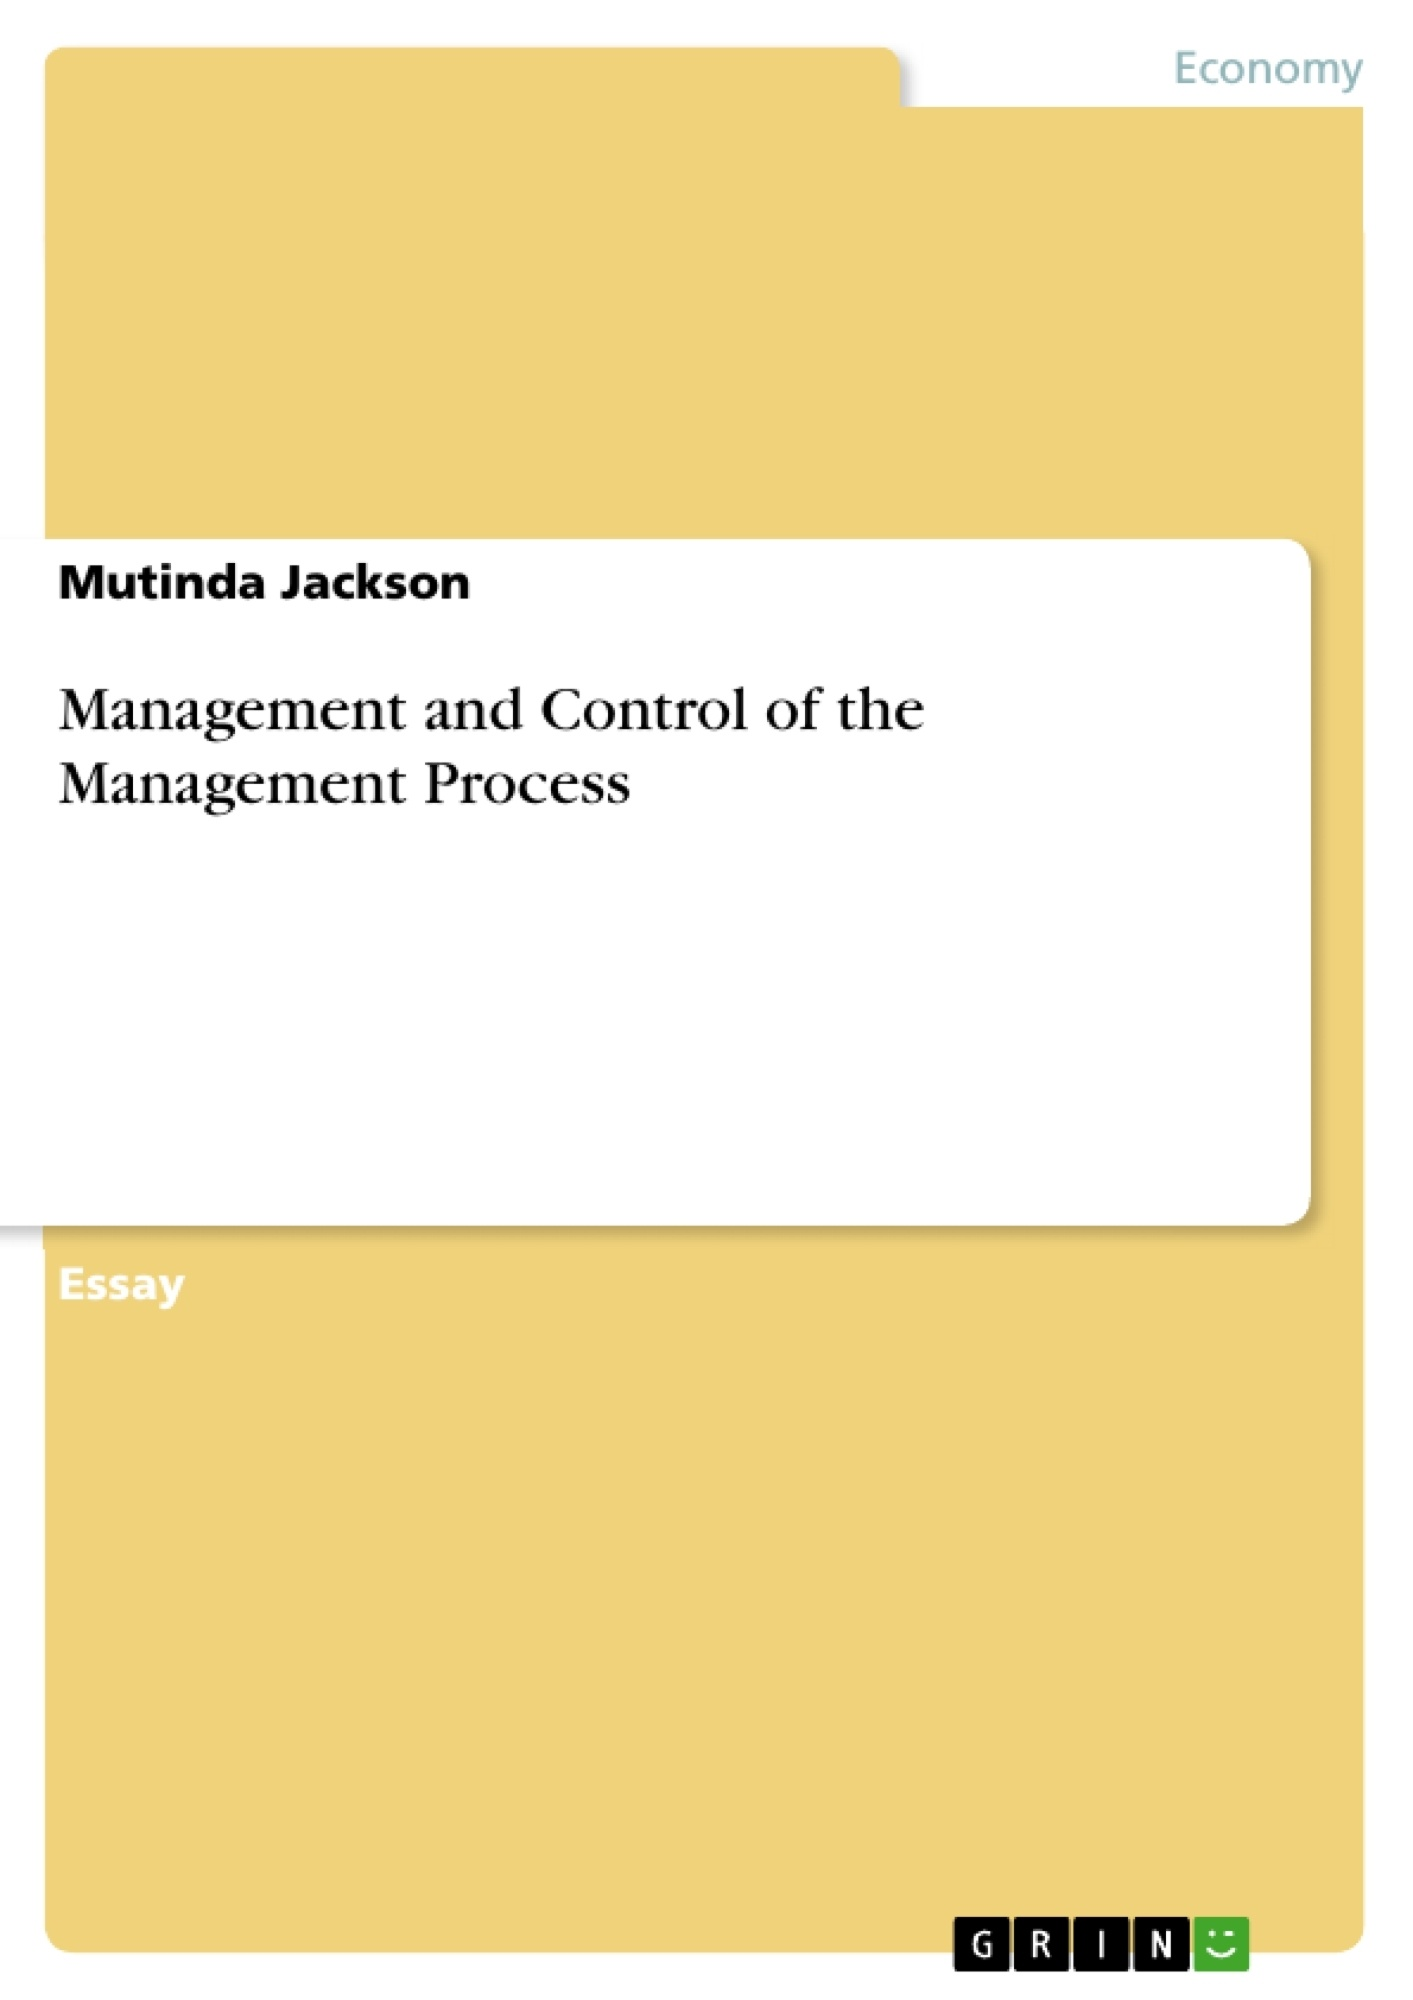 Title: Management and Control of the Management Process